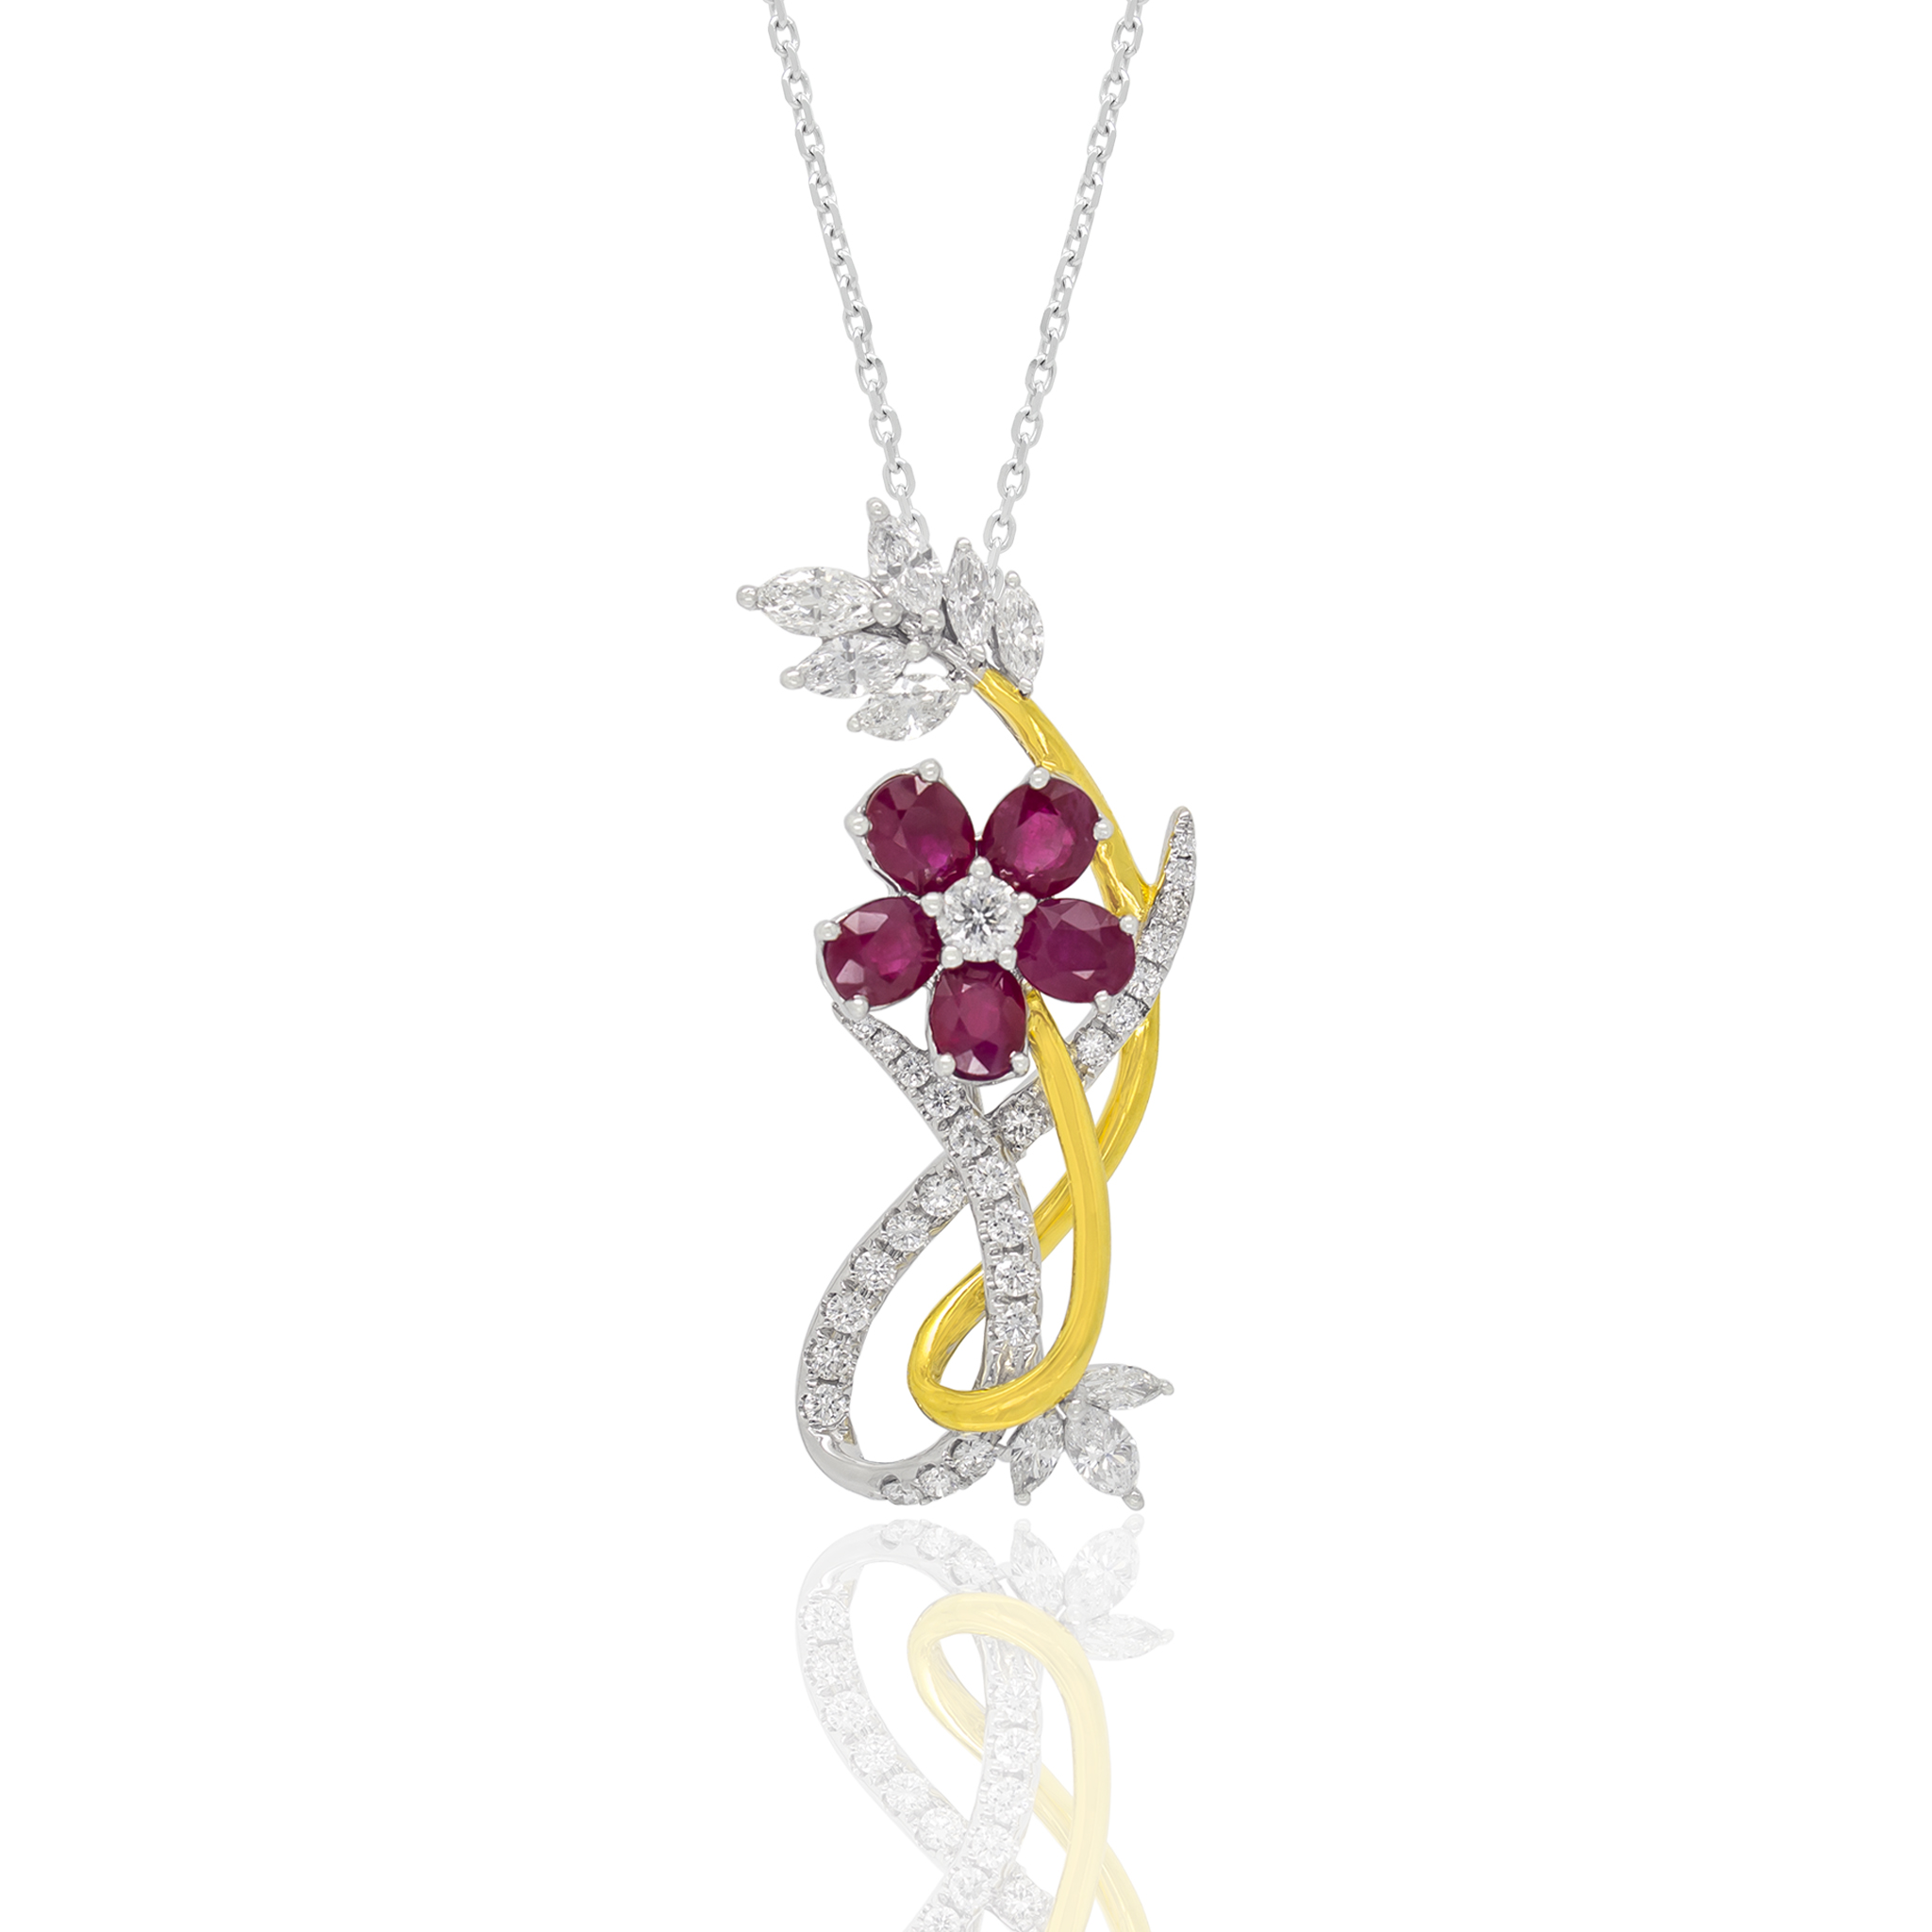 Noxy ruby necklace